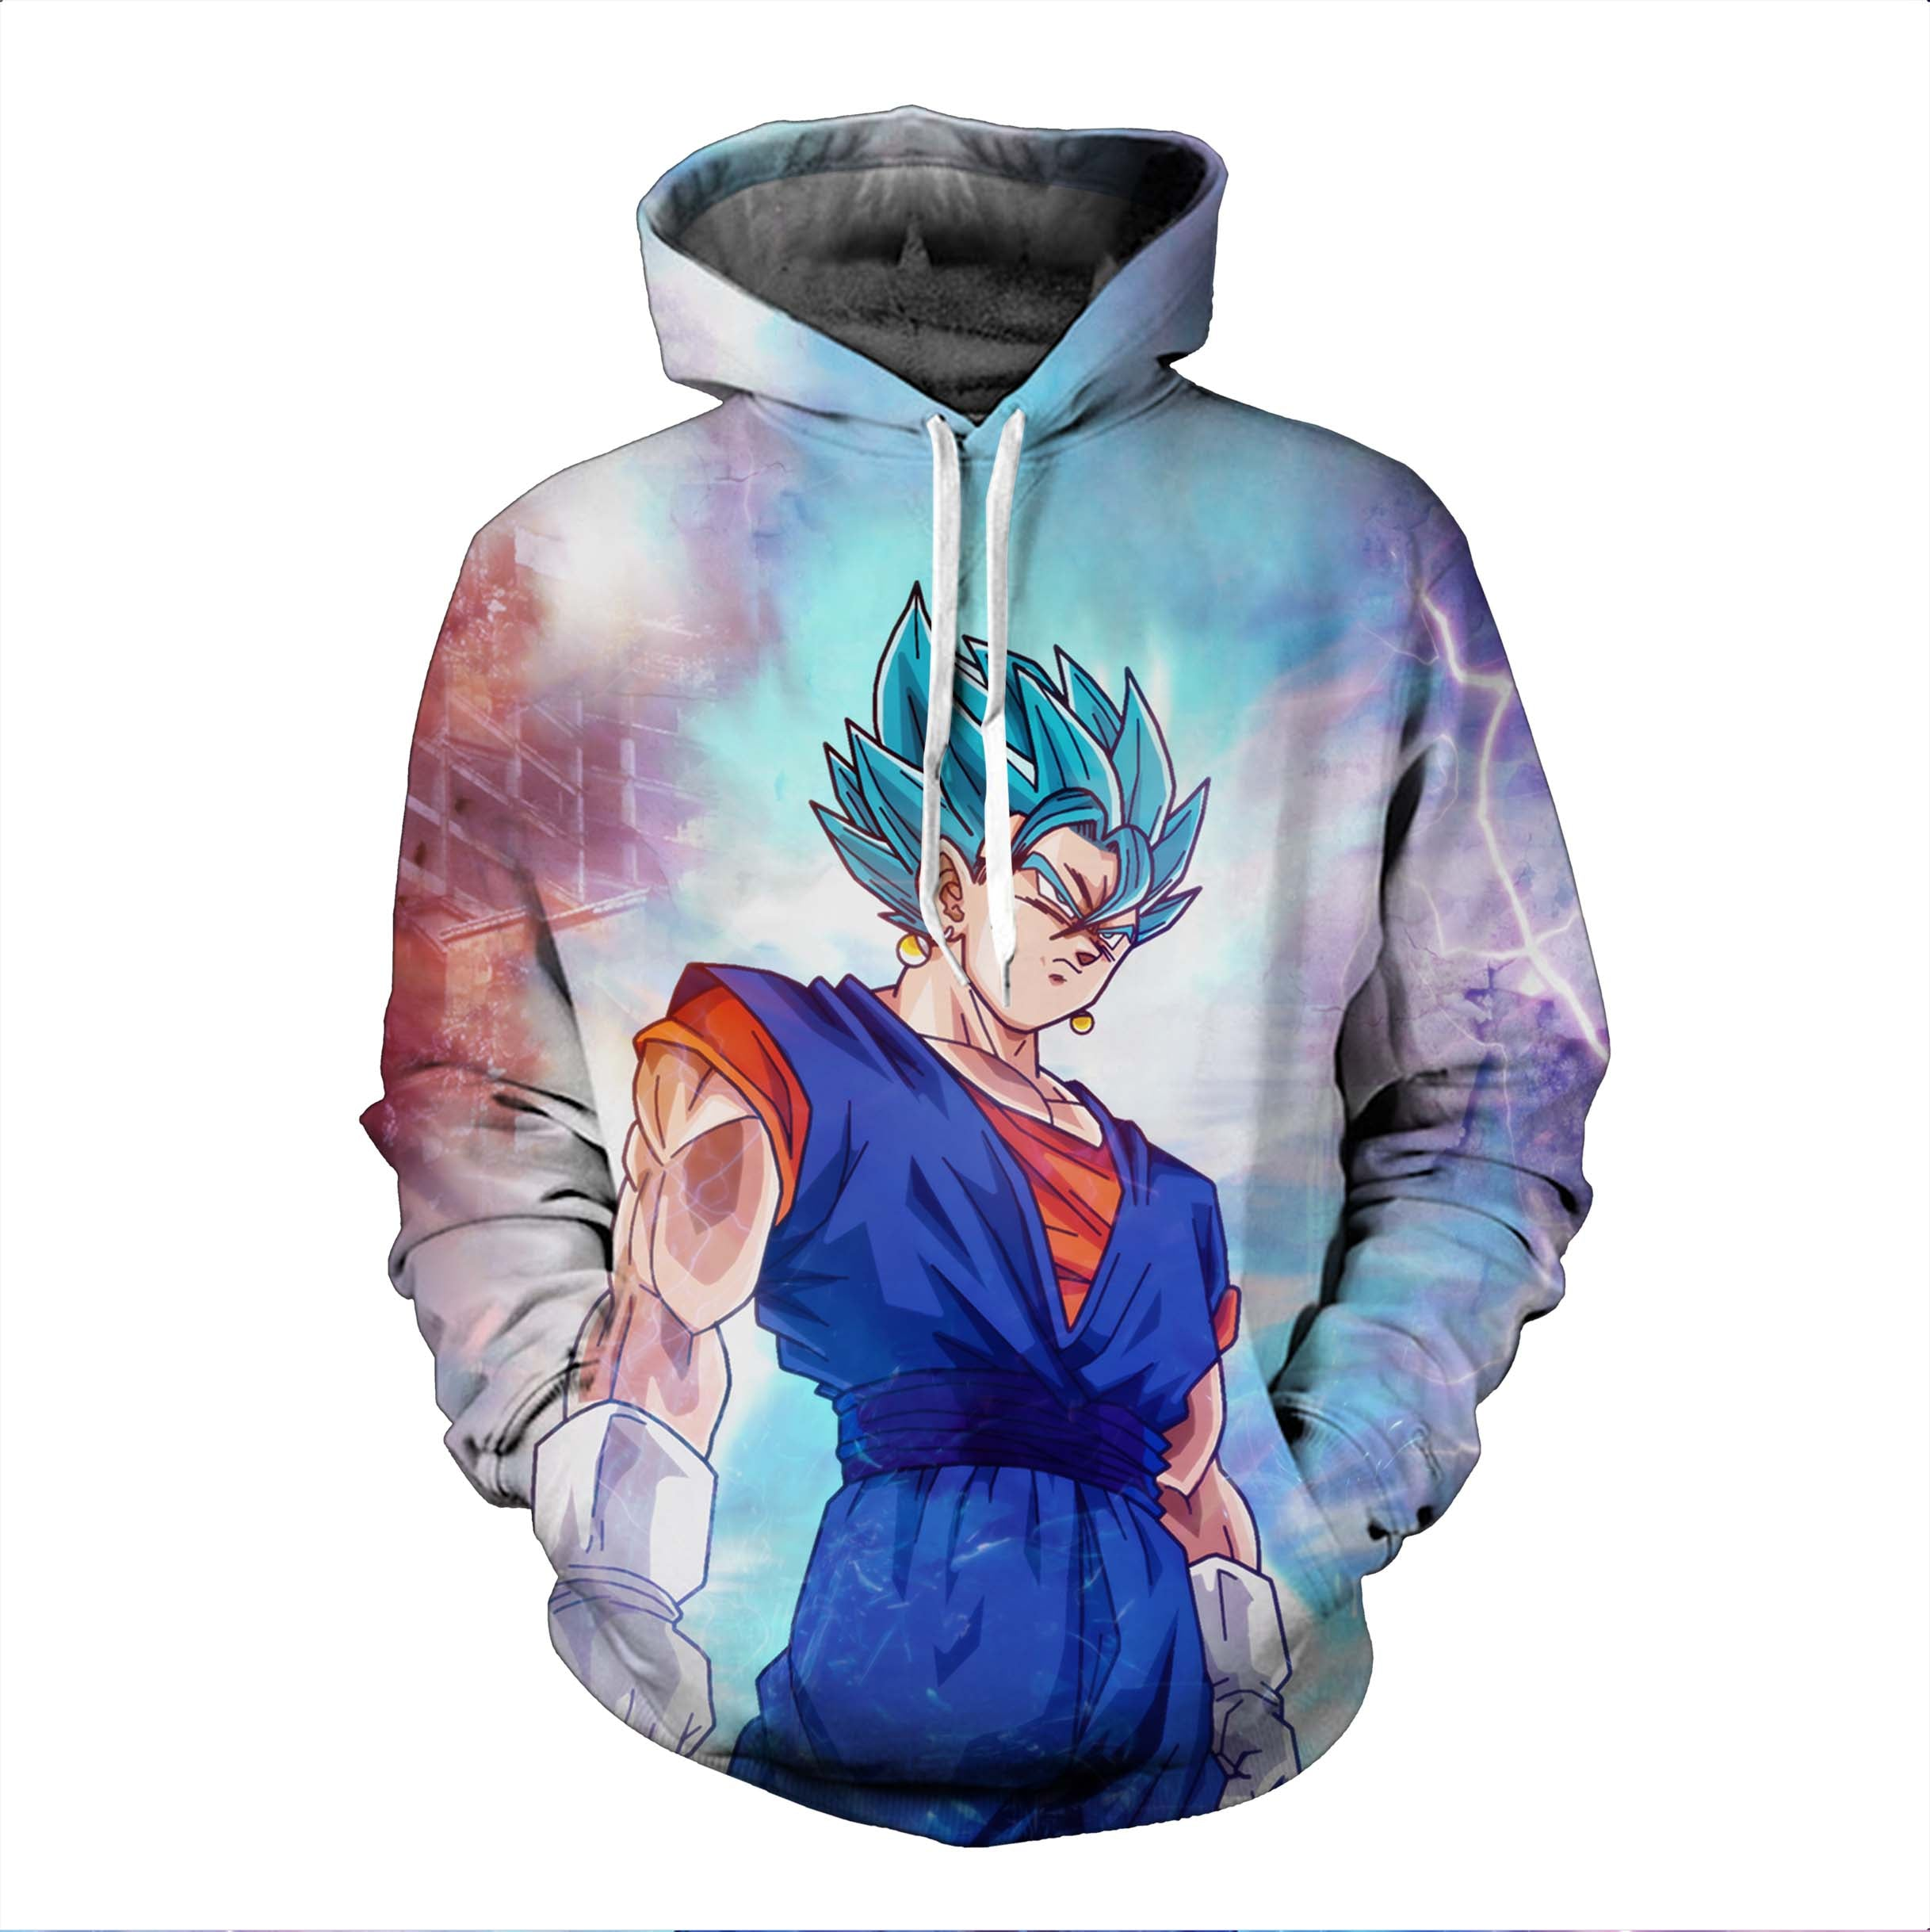 Dragon Ball Hoodies, 3D Clear Print, Best Quality : Design 6568